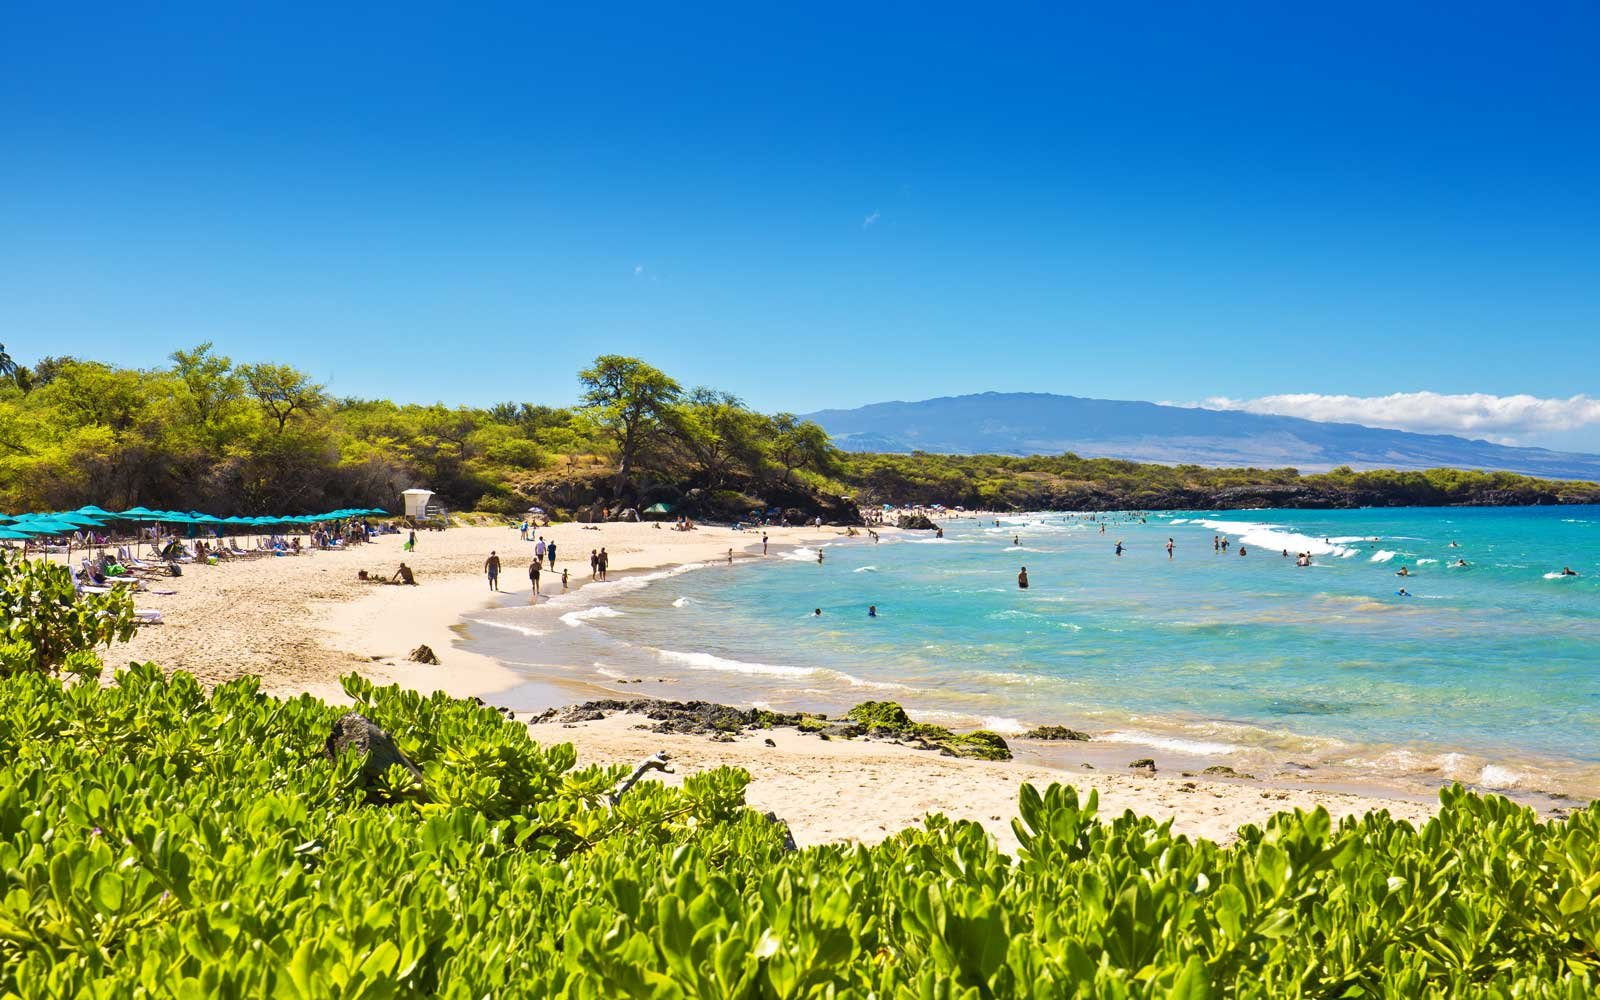 Hapuna Beach, one of the most popular white sand beach on the Big Island of Hawaii.